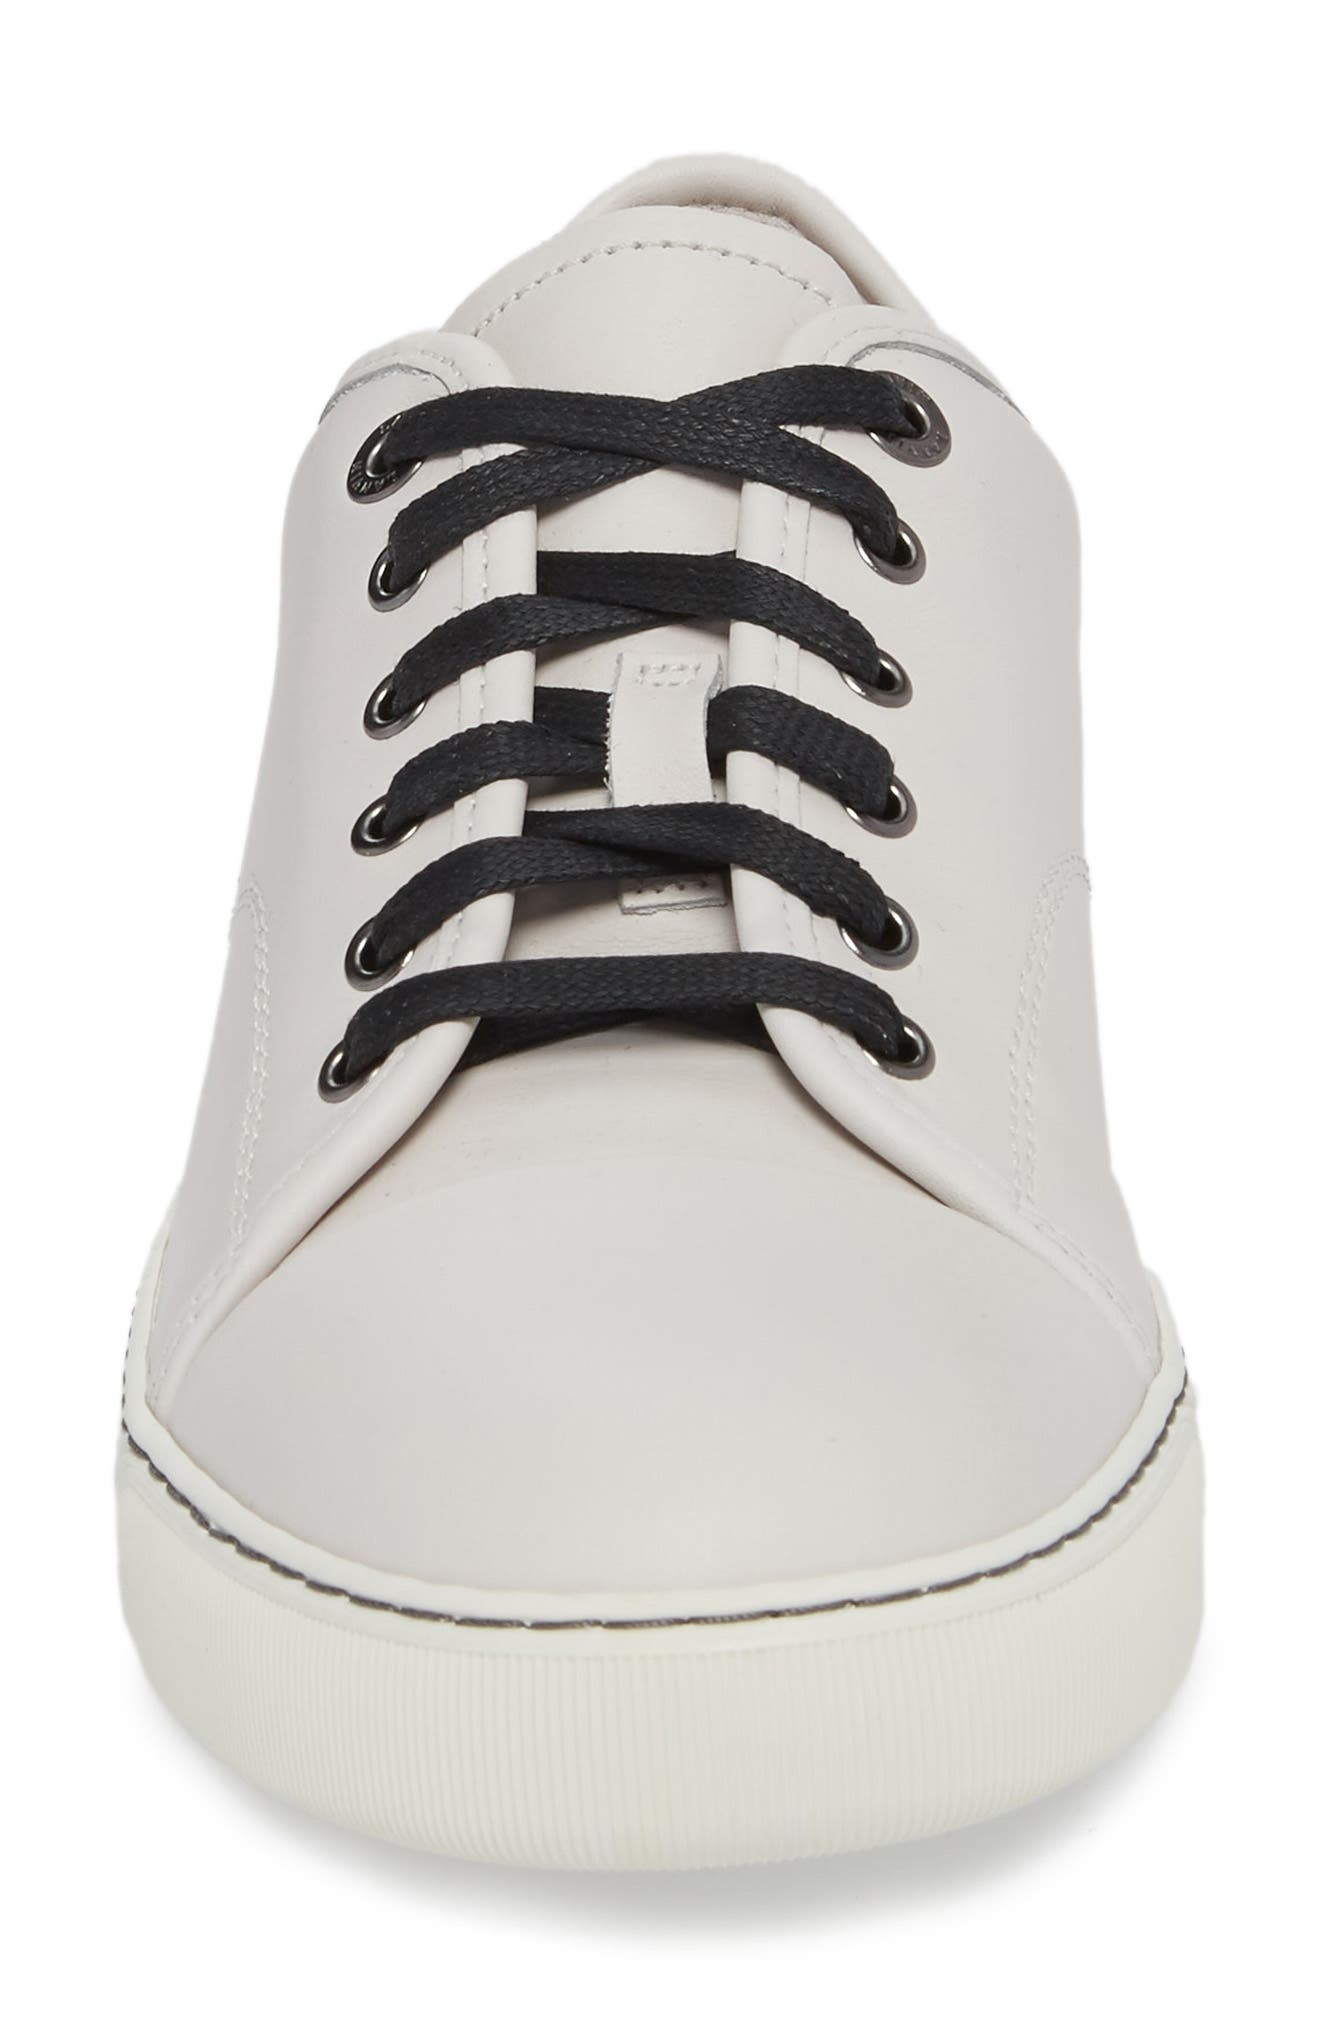 LANVIN,                             Low Top Sneaker,                             Alternate thumbnail 4, color,                             102